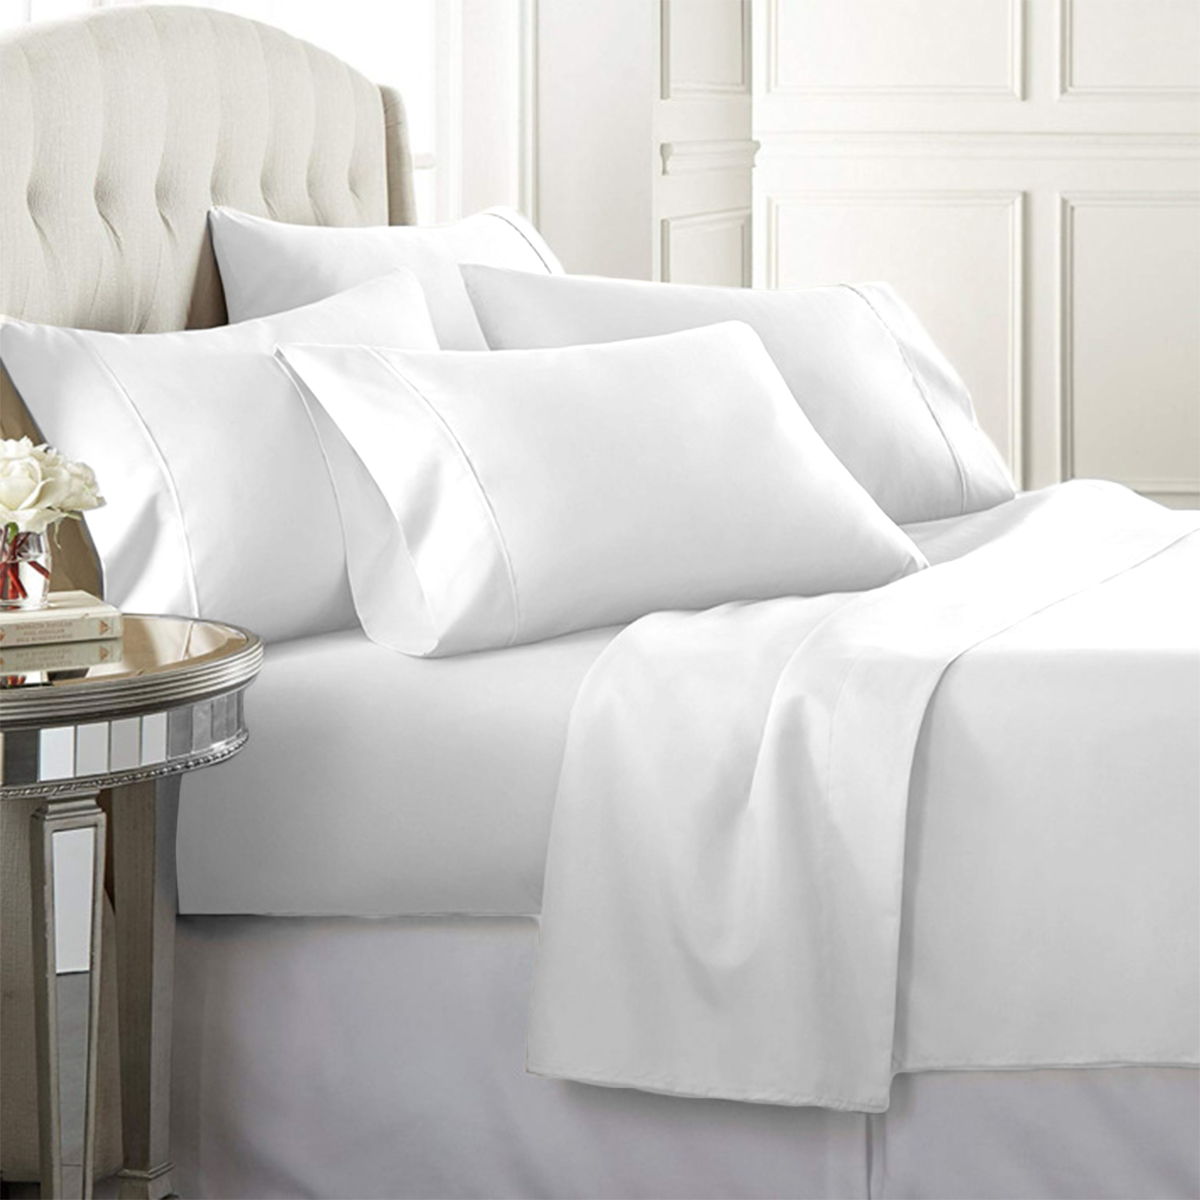 Luxury Home Super-Soft 1600 Series Double-Brushed 6 Pcs Bed Sheets Set (Queen, White)